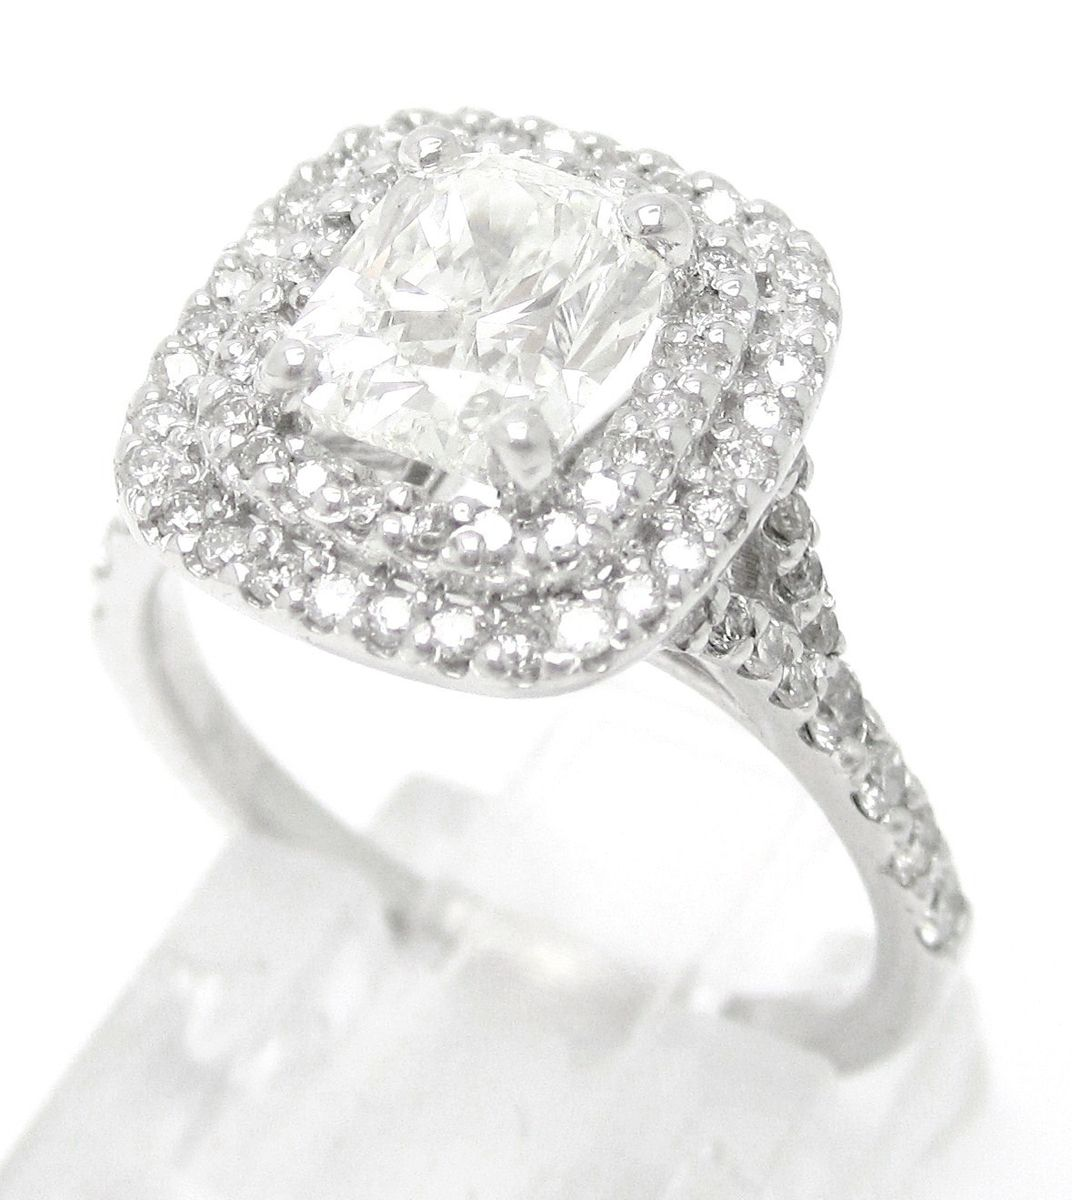 Custommade Diamond: Hand Crafted 2.15ctw Soleste Style Diamond Engagement Ring